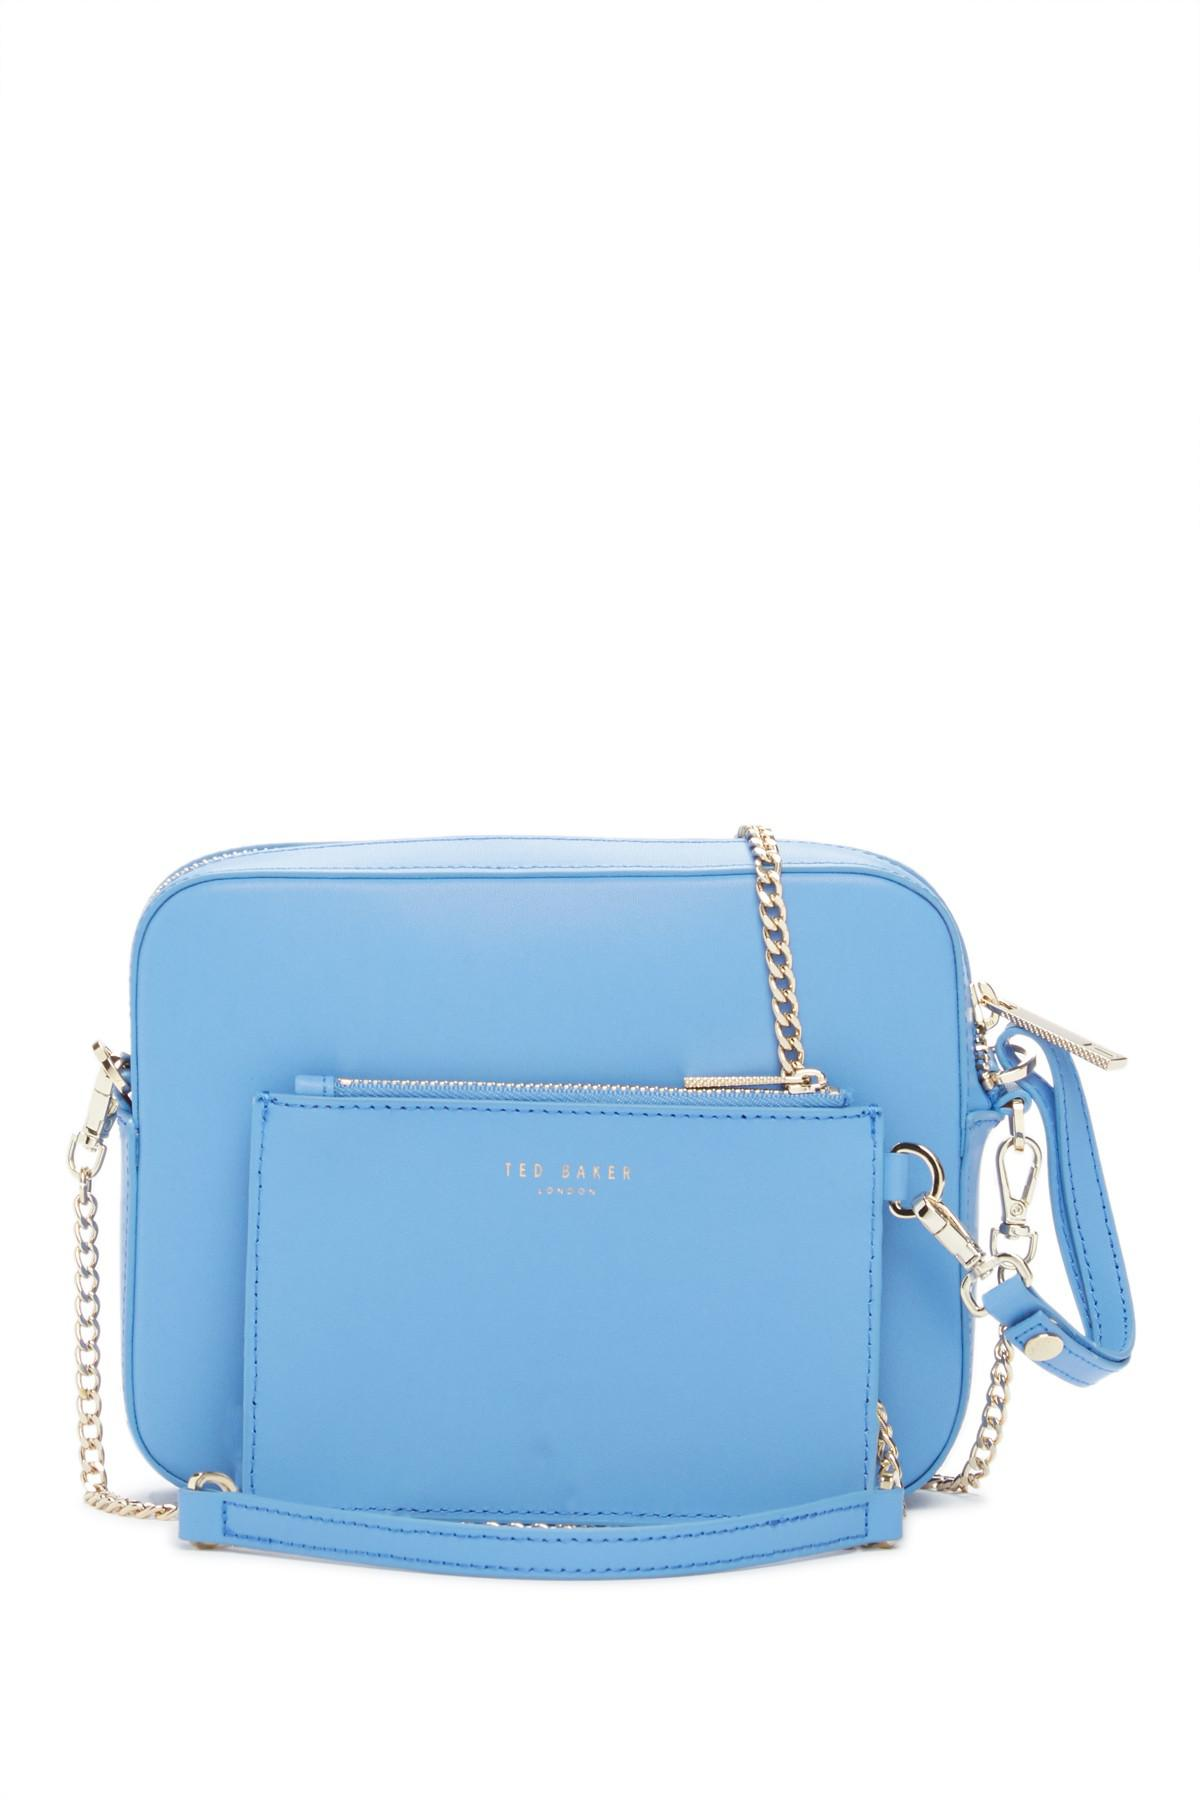 96f7f2e1a Ted Baker Laneyy Chain Strap Camera Bag in Blue - Lyst